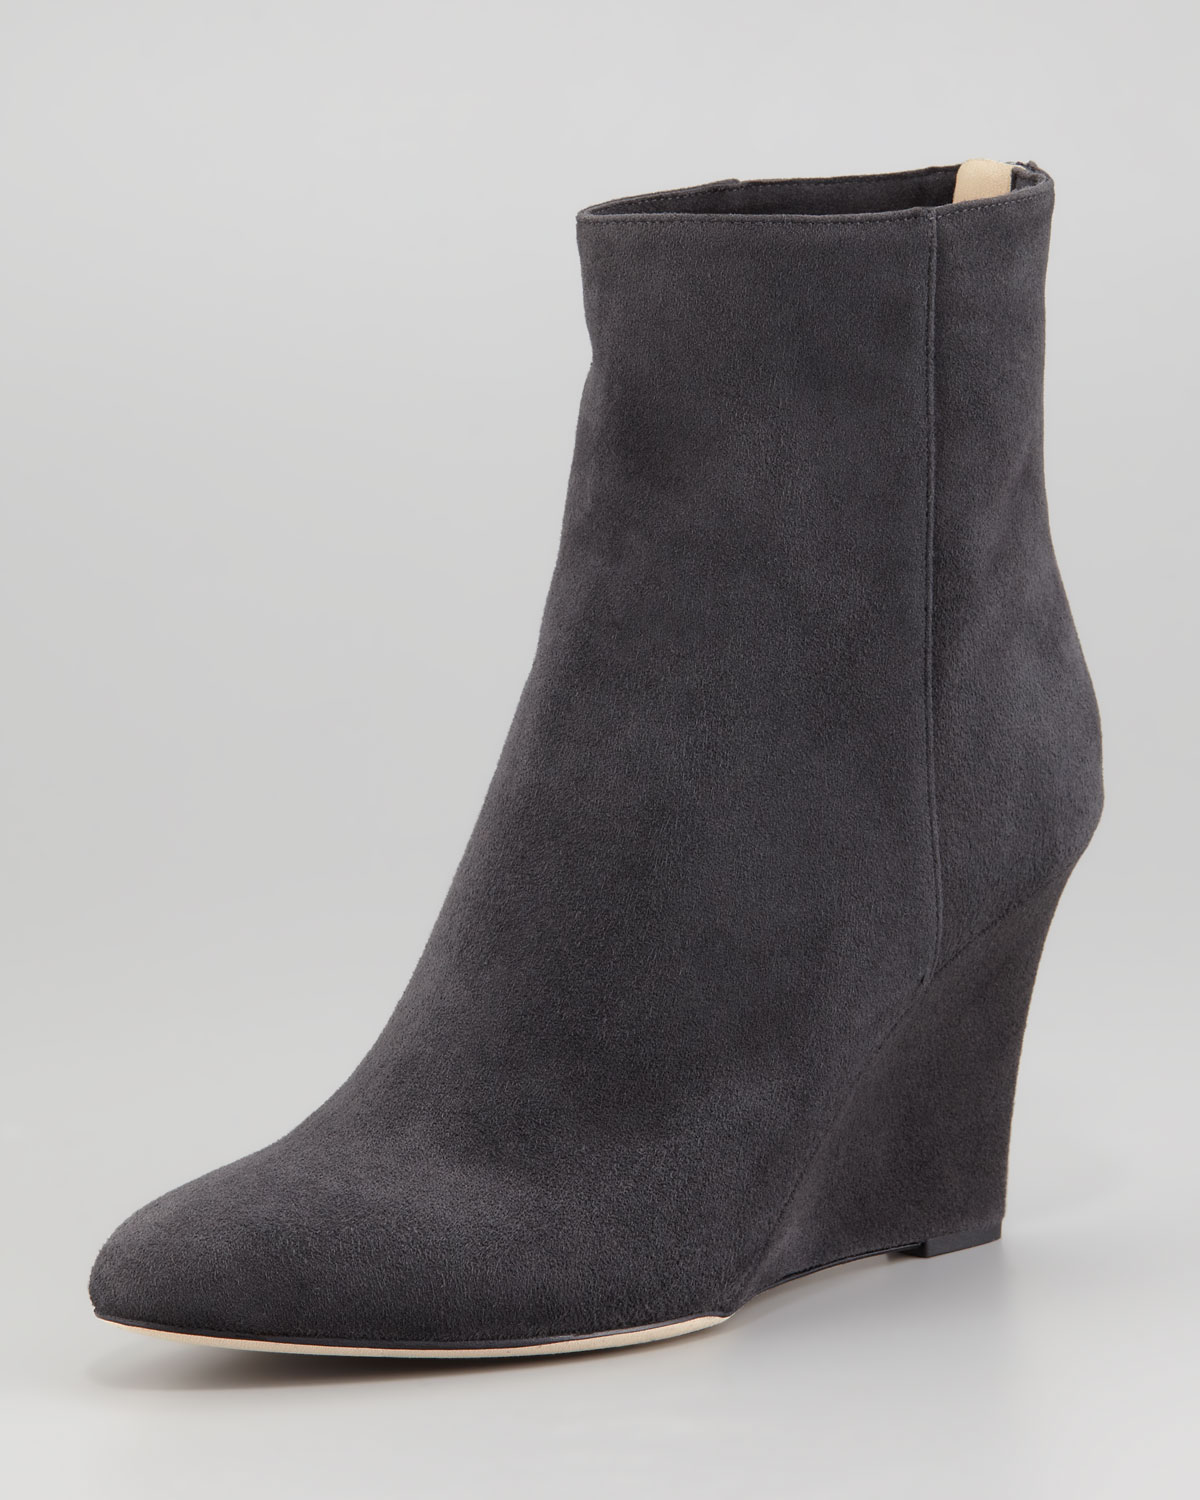 jimmy choo mayor suede wedge ankle boot gray in gray lyst